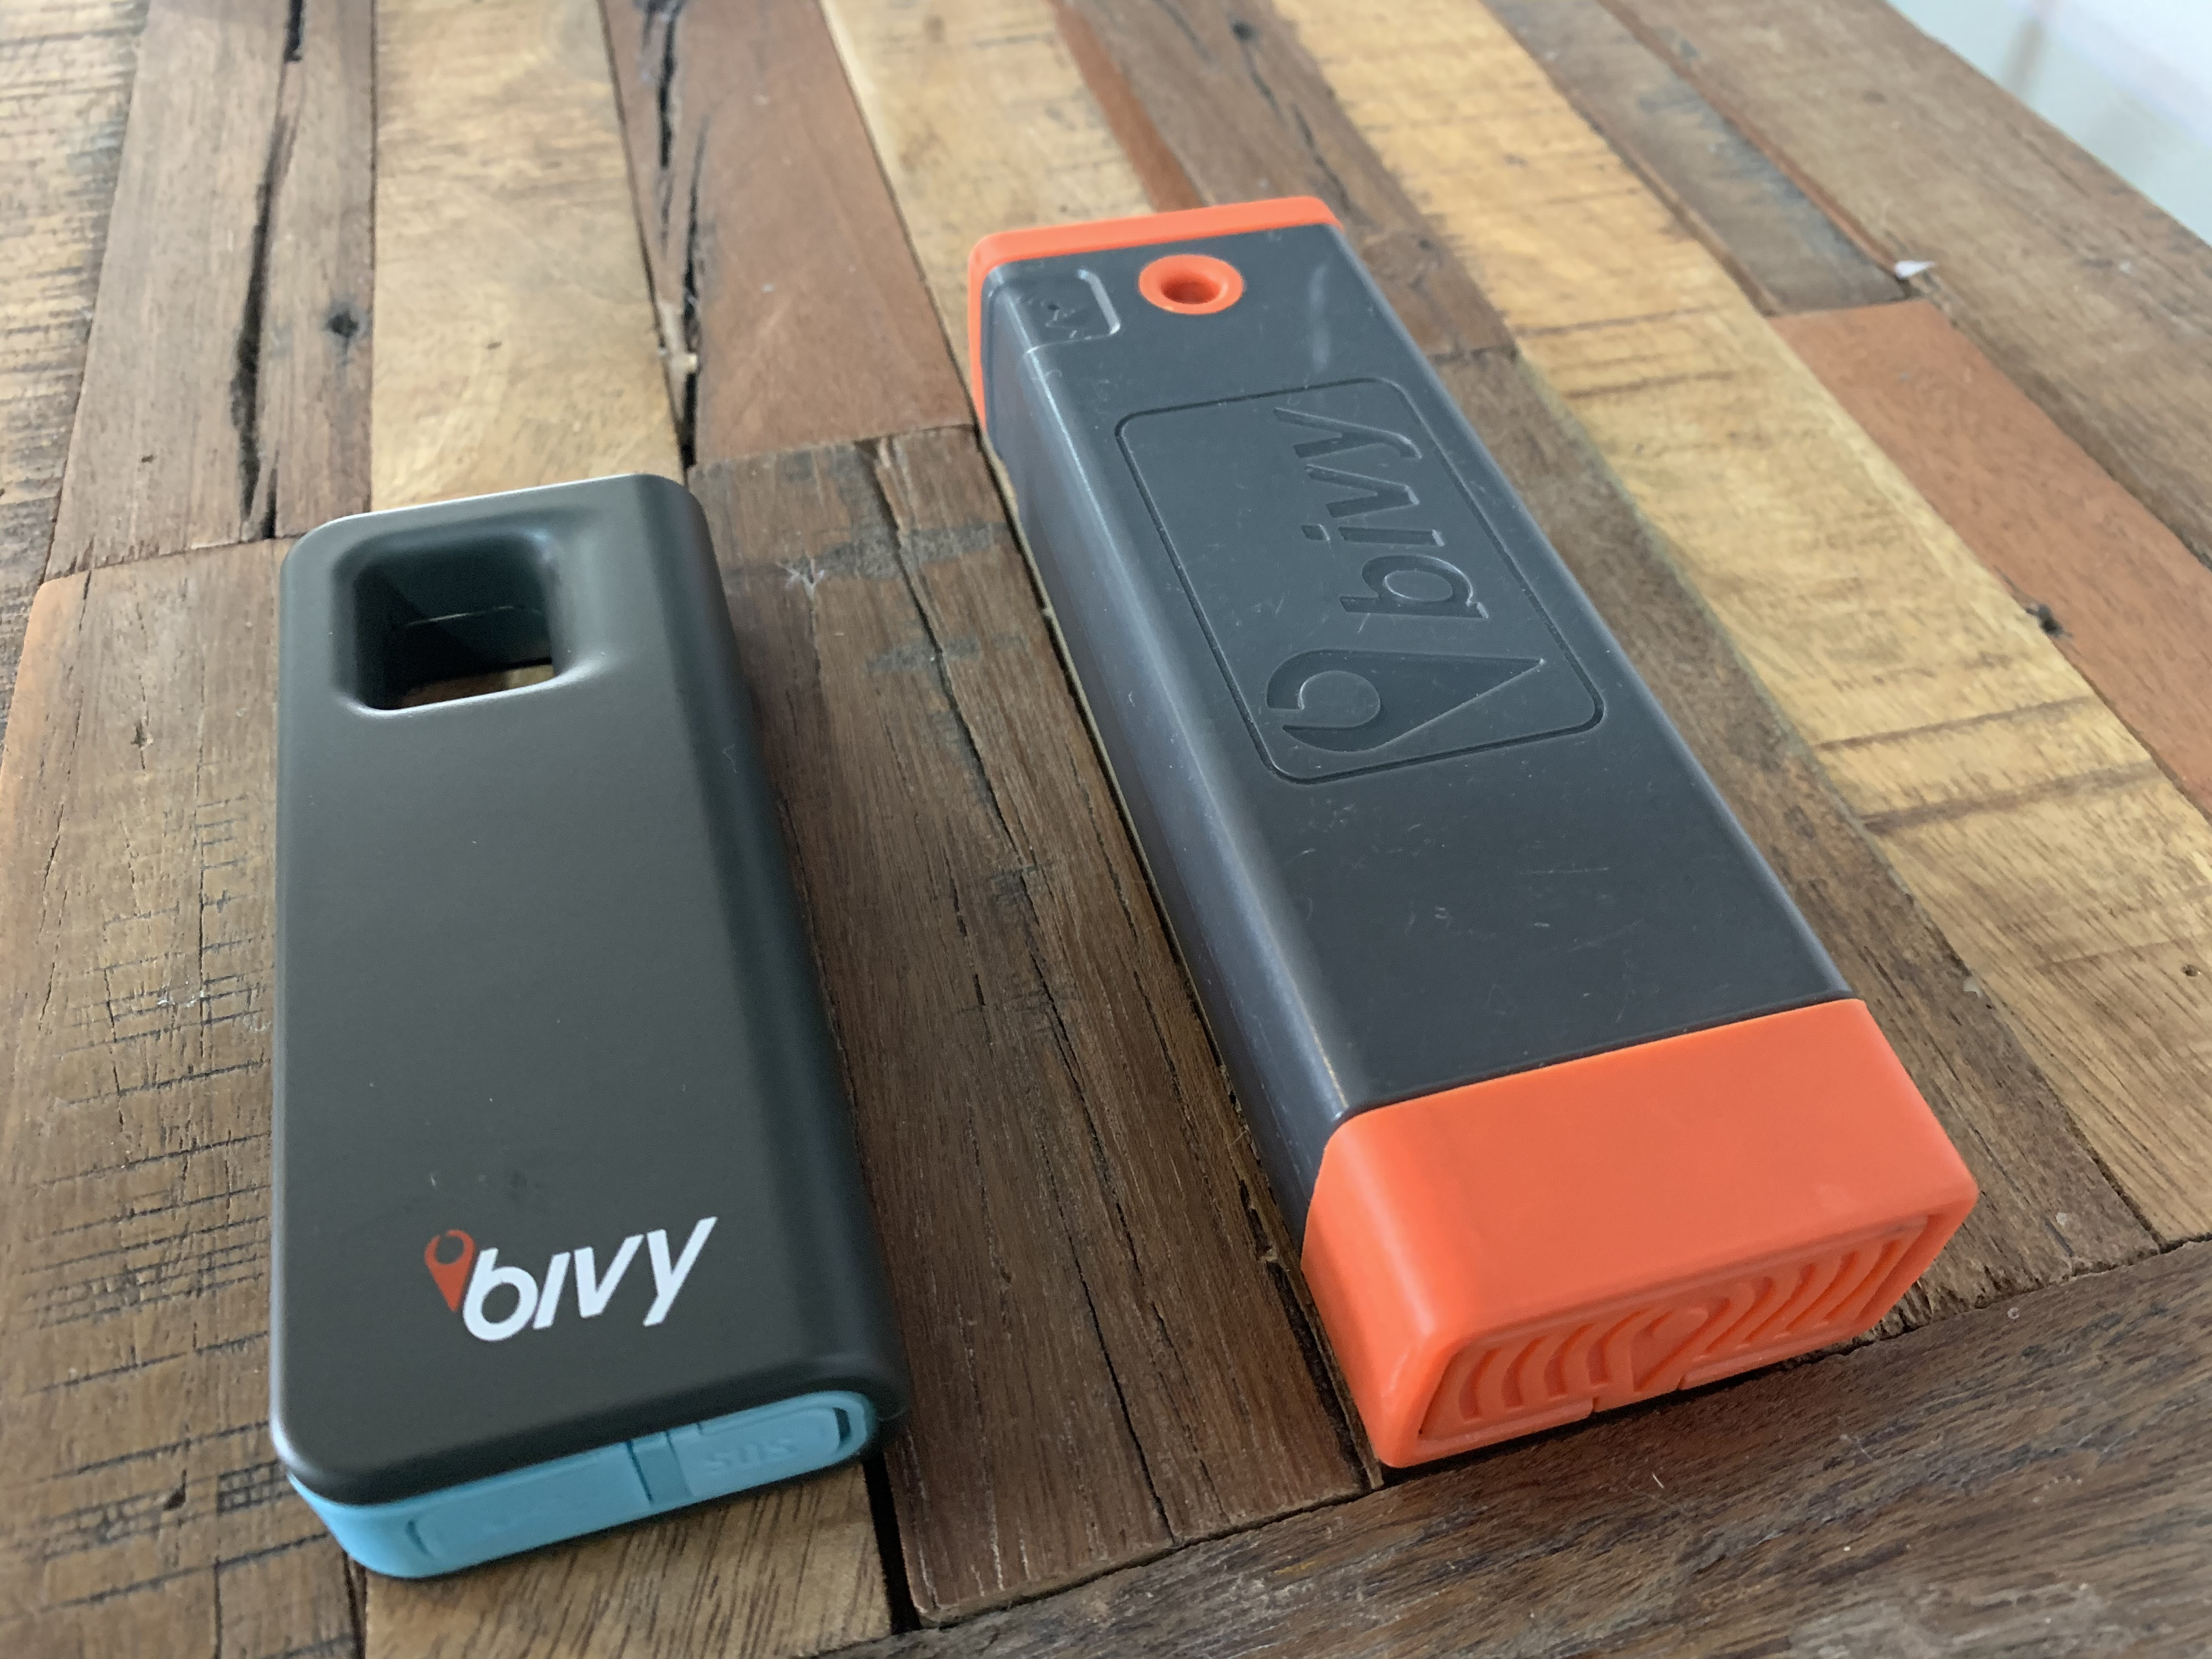 First Look: Bivy Stick Launches Lightest Satellite Device Yet